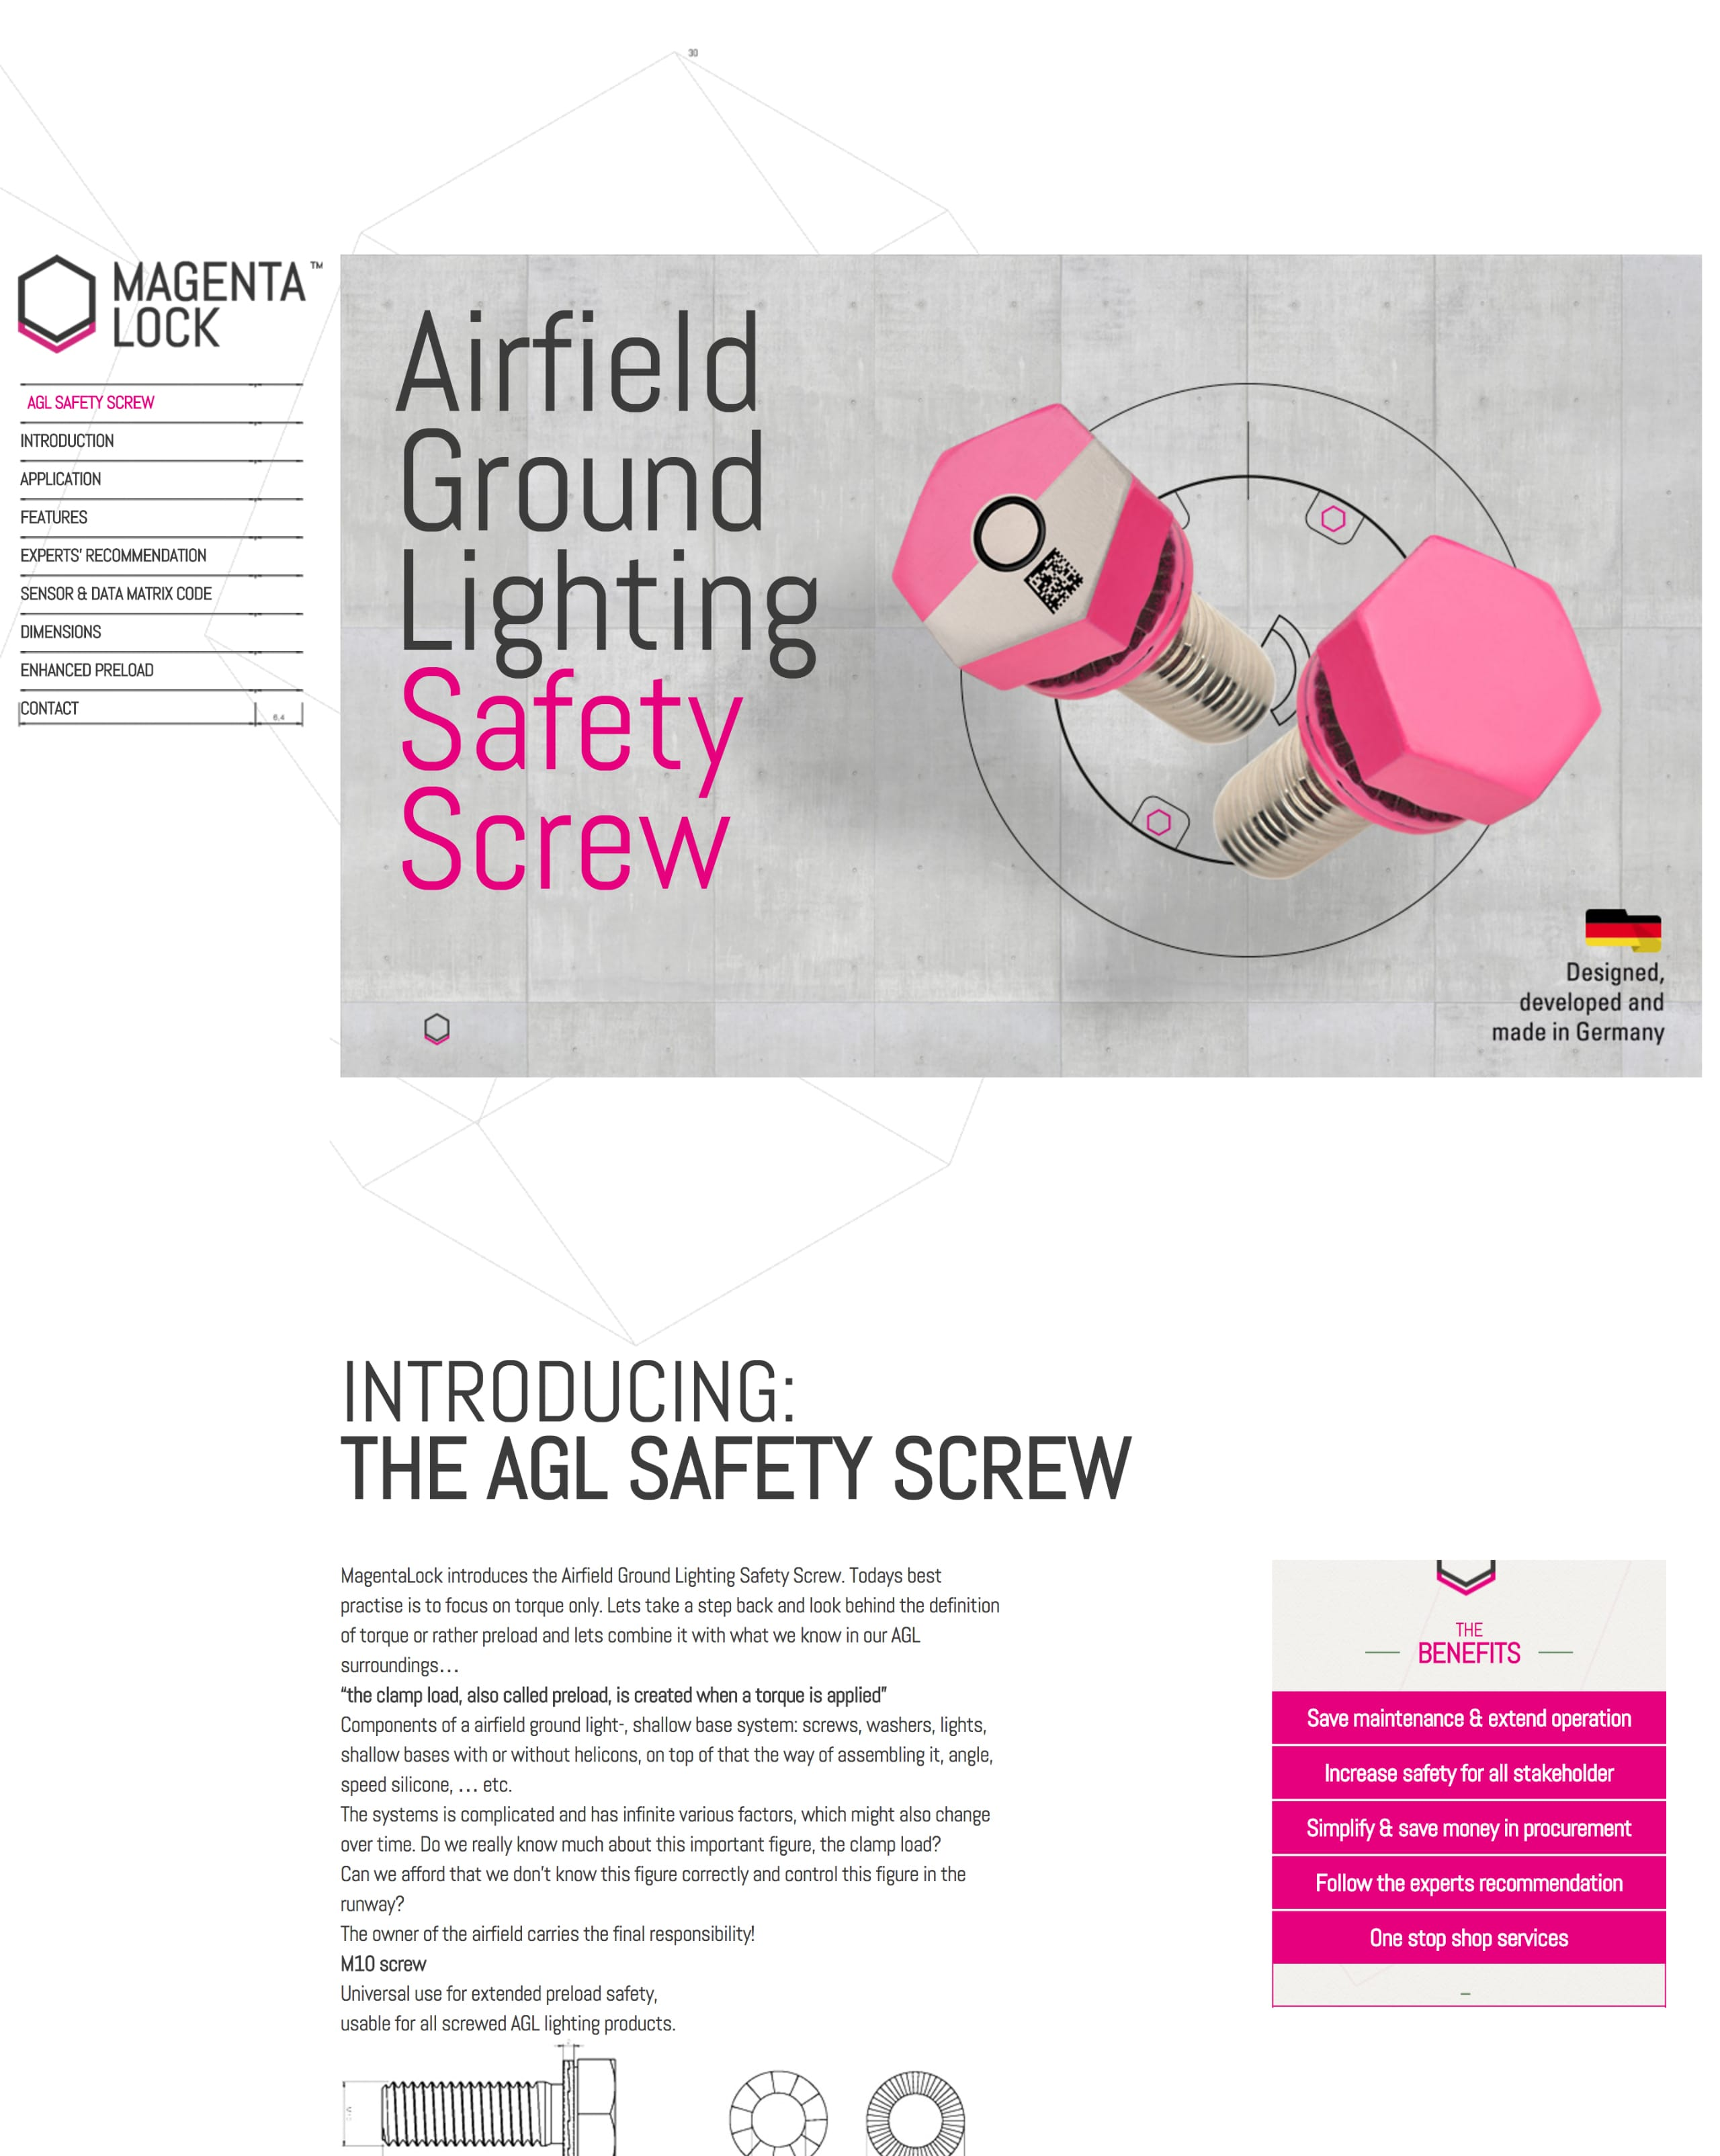 Airfield Ground Lighting Safety Screw Website Screenshot